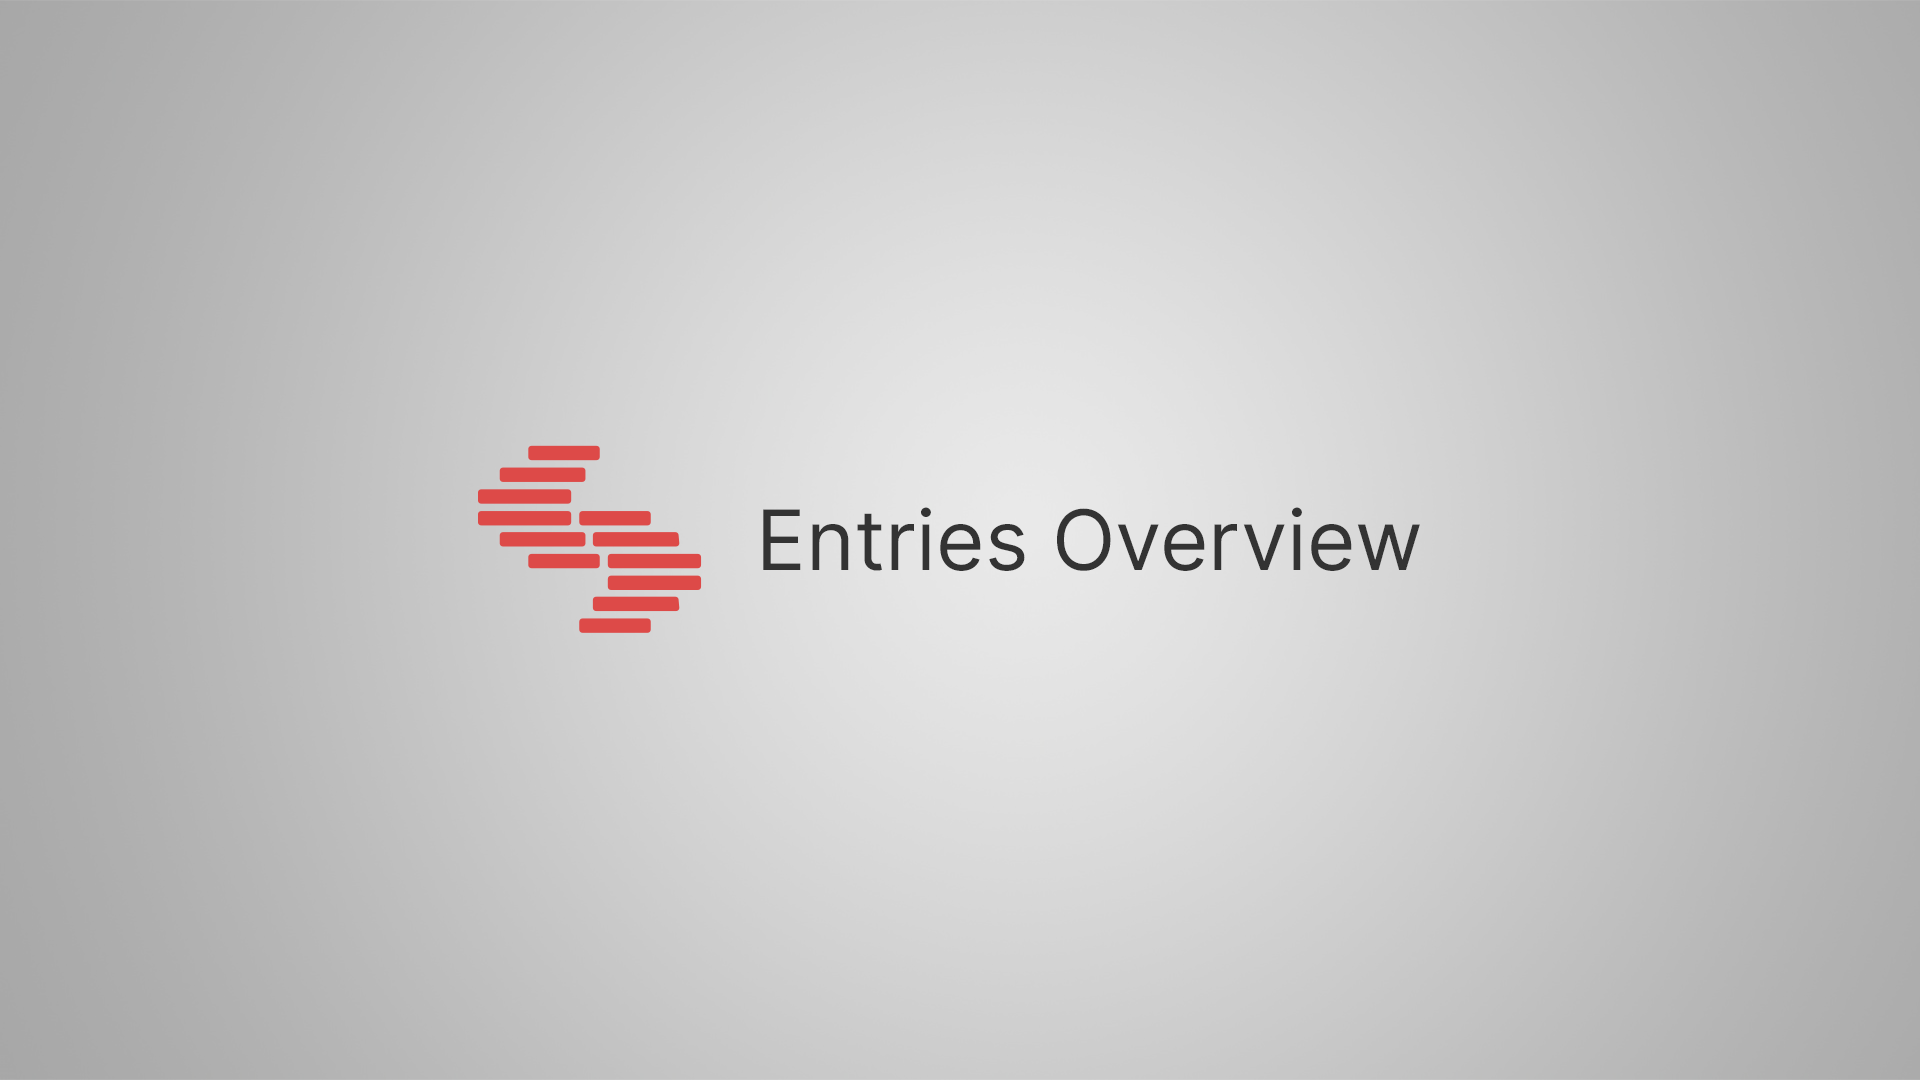 About Entries